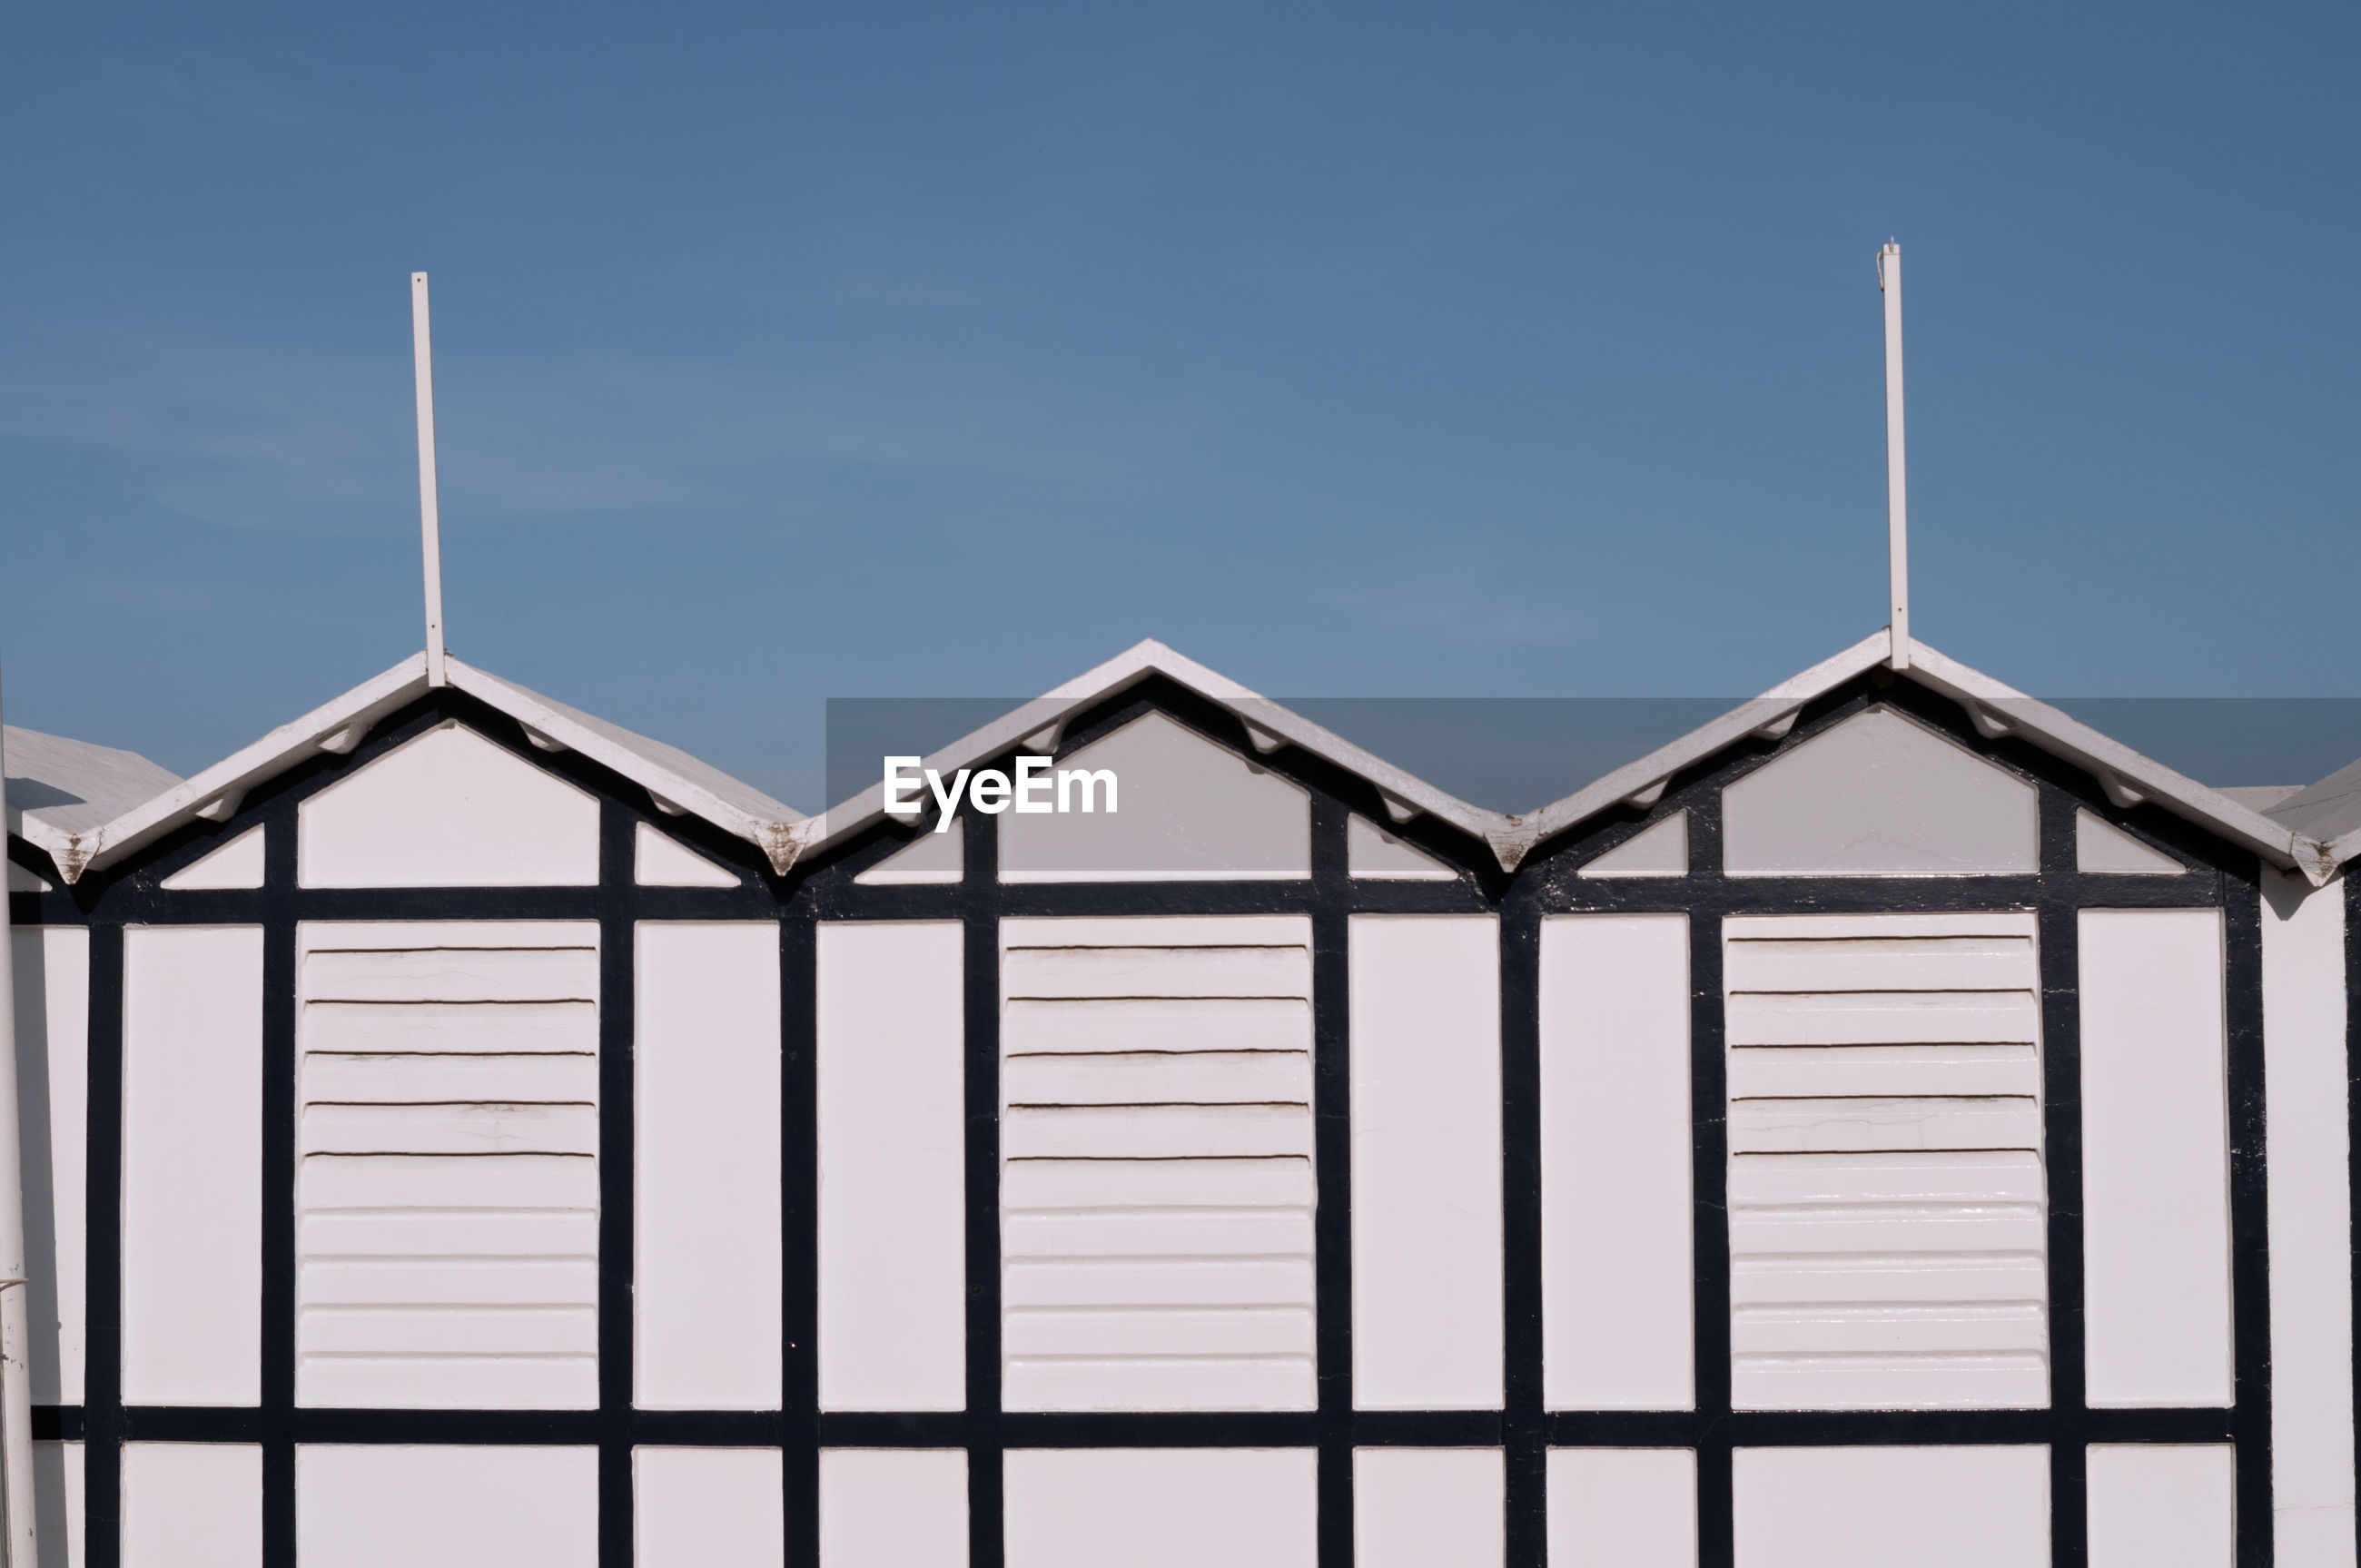 Detail of typical beach huts in italy. white, with a beautiful blue sky in the background